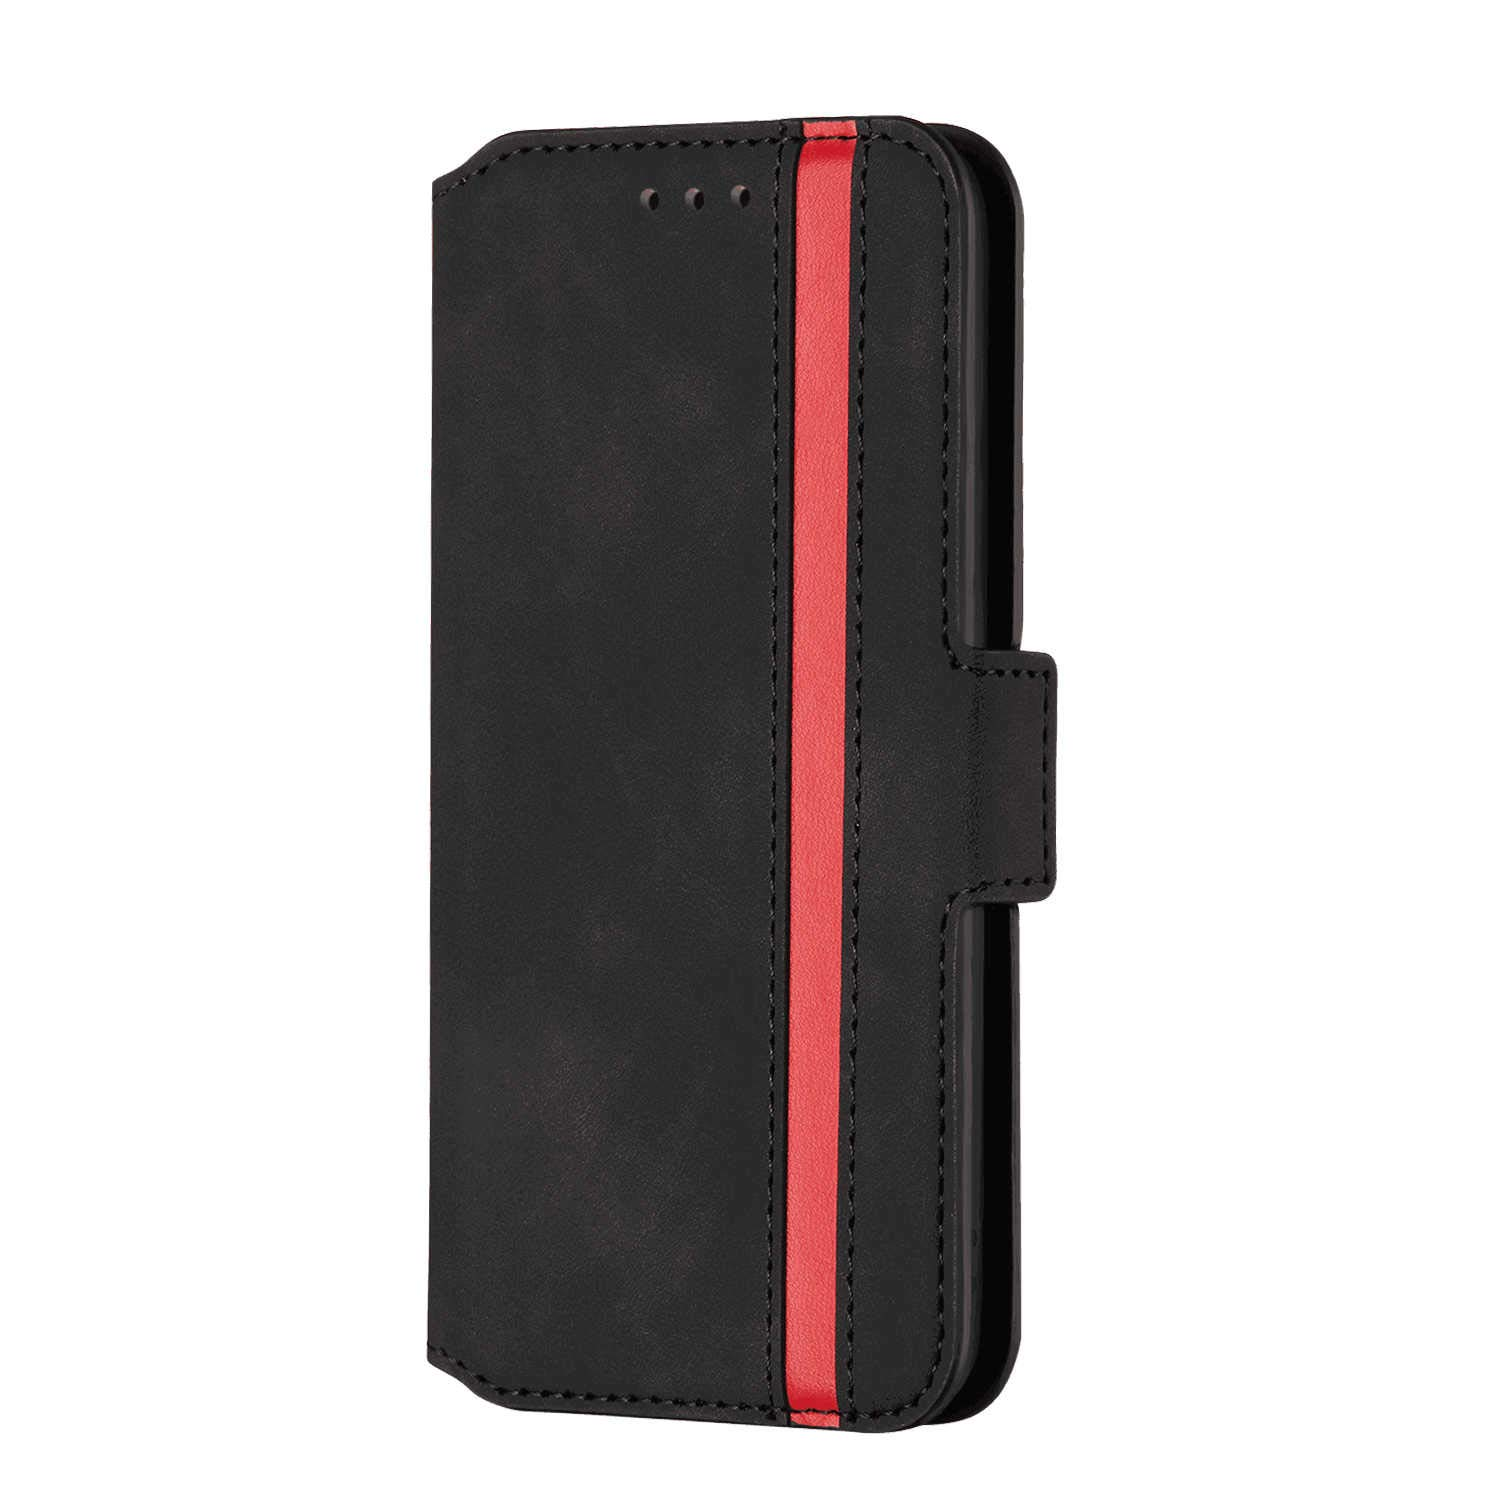 Positive Cover Compatible with iPhone XR, black PU Leather Wallet Flip Case for iPhone XR